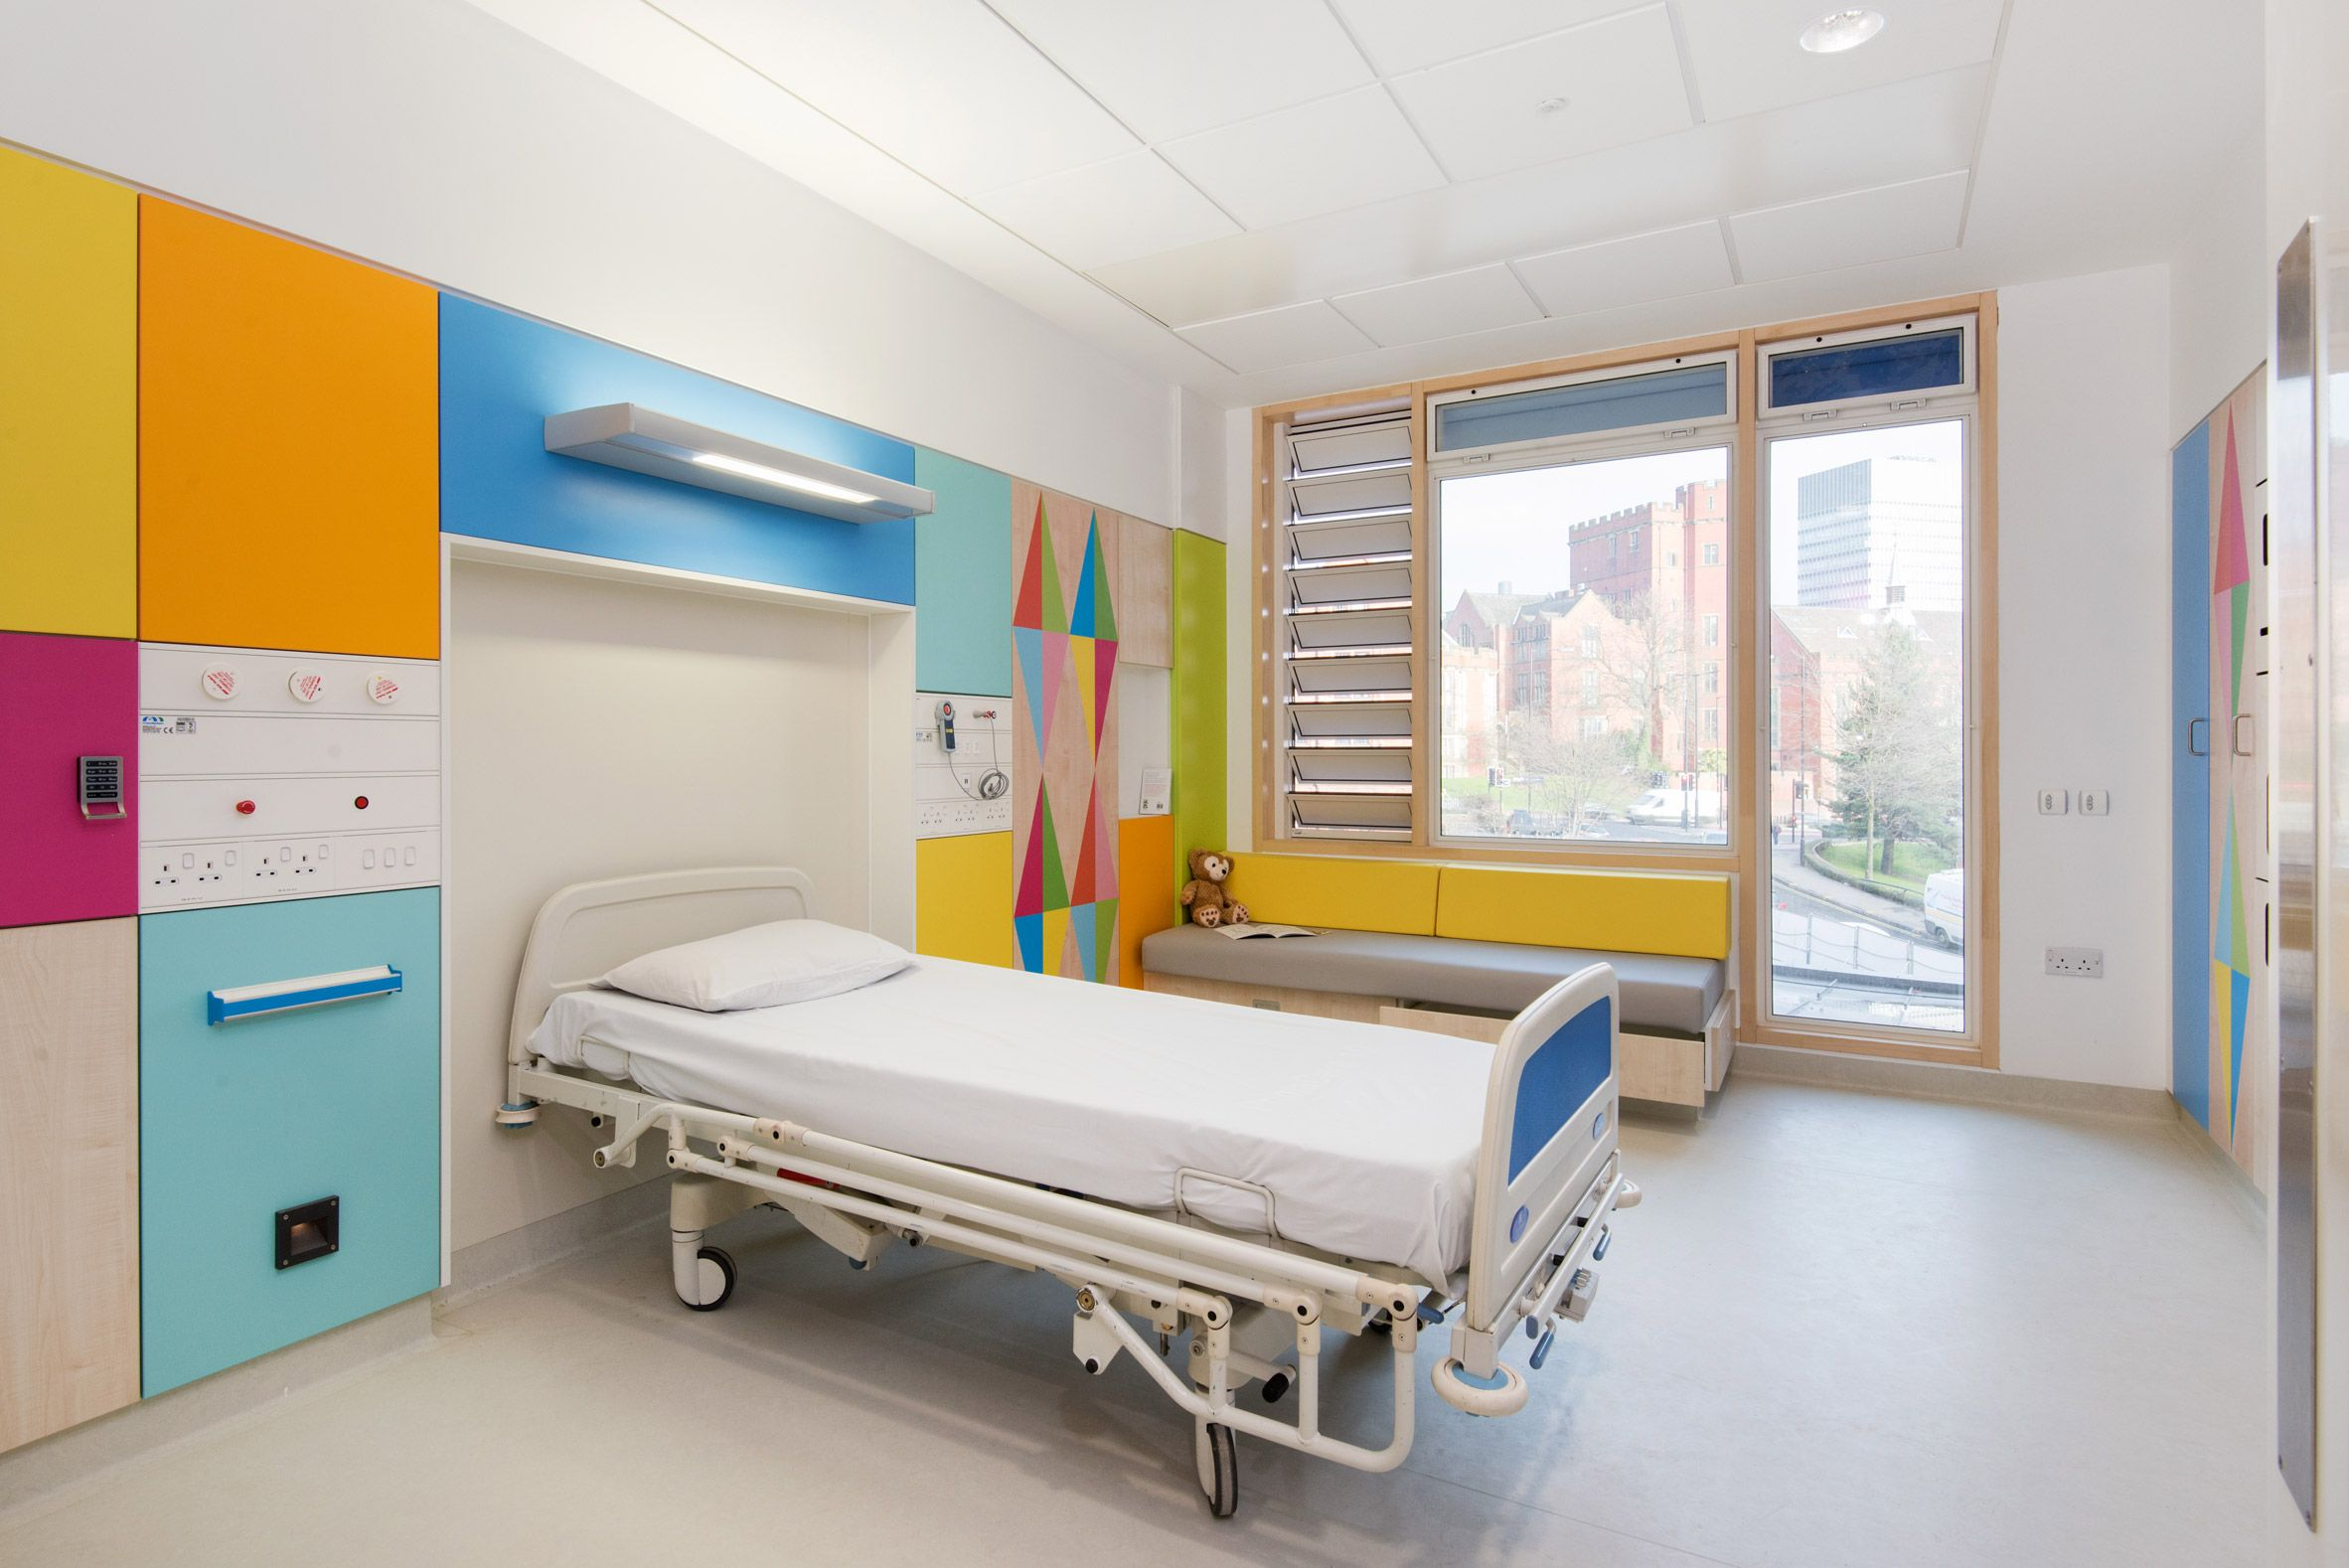 Morag Myerscough Redesigns Sheffield Childrens Hospital Bedrooms With Geometric Interior Patterns